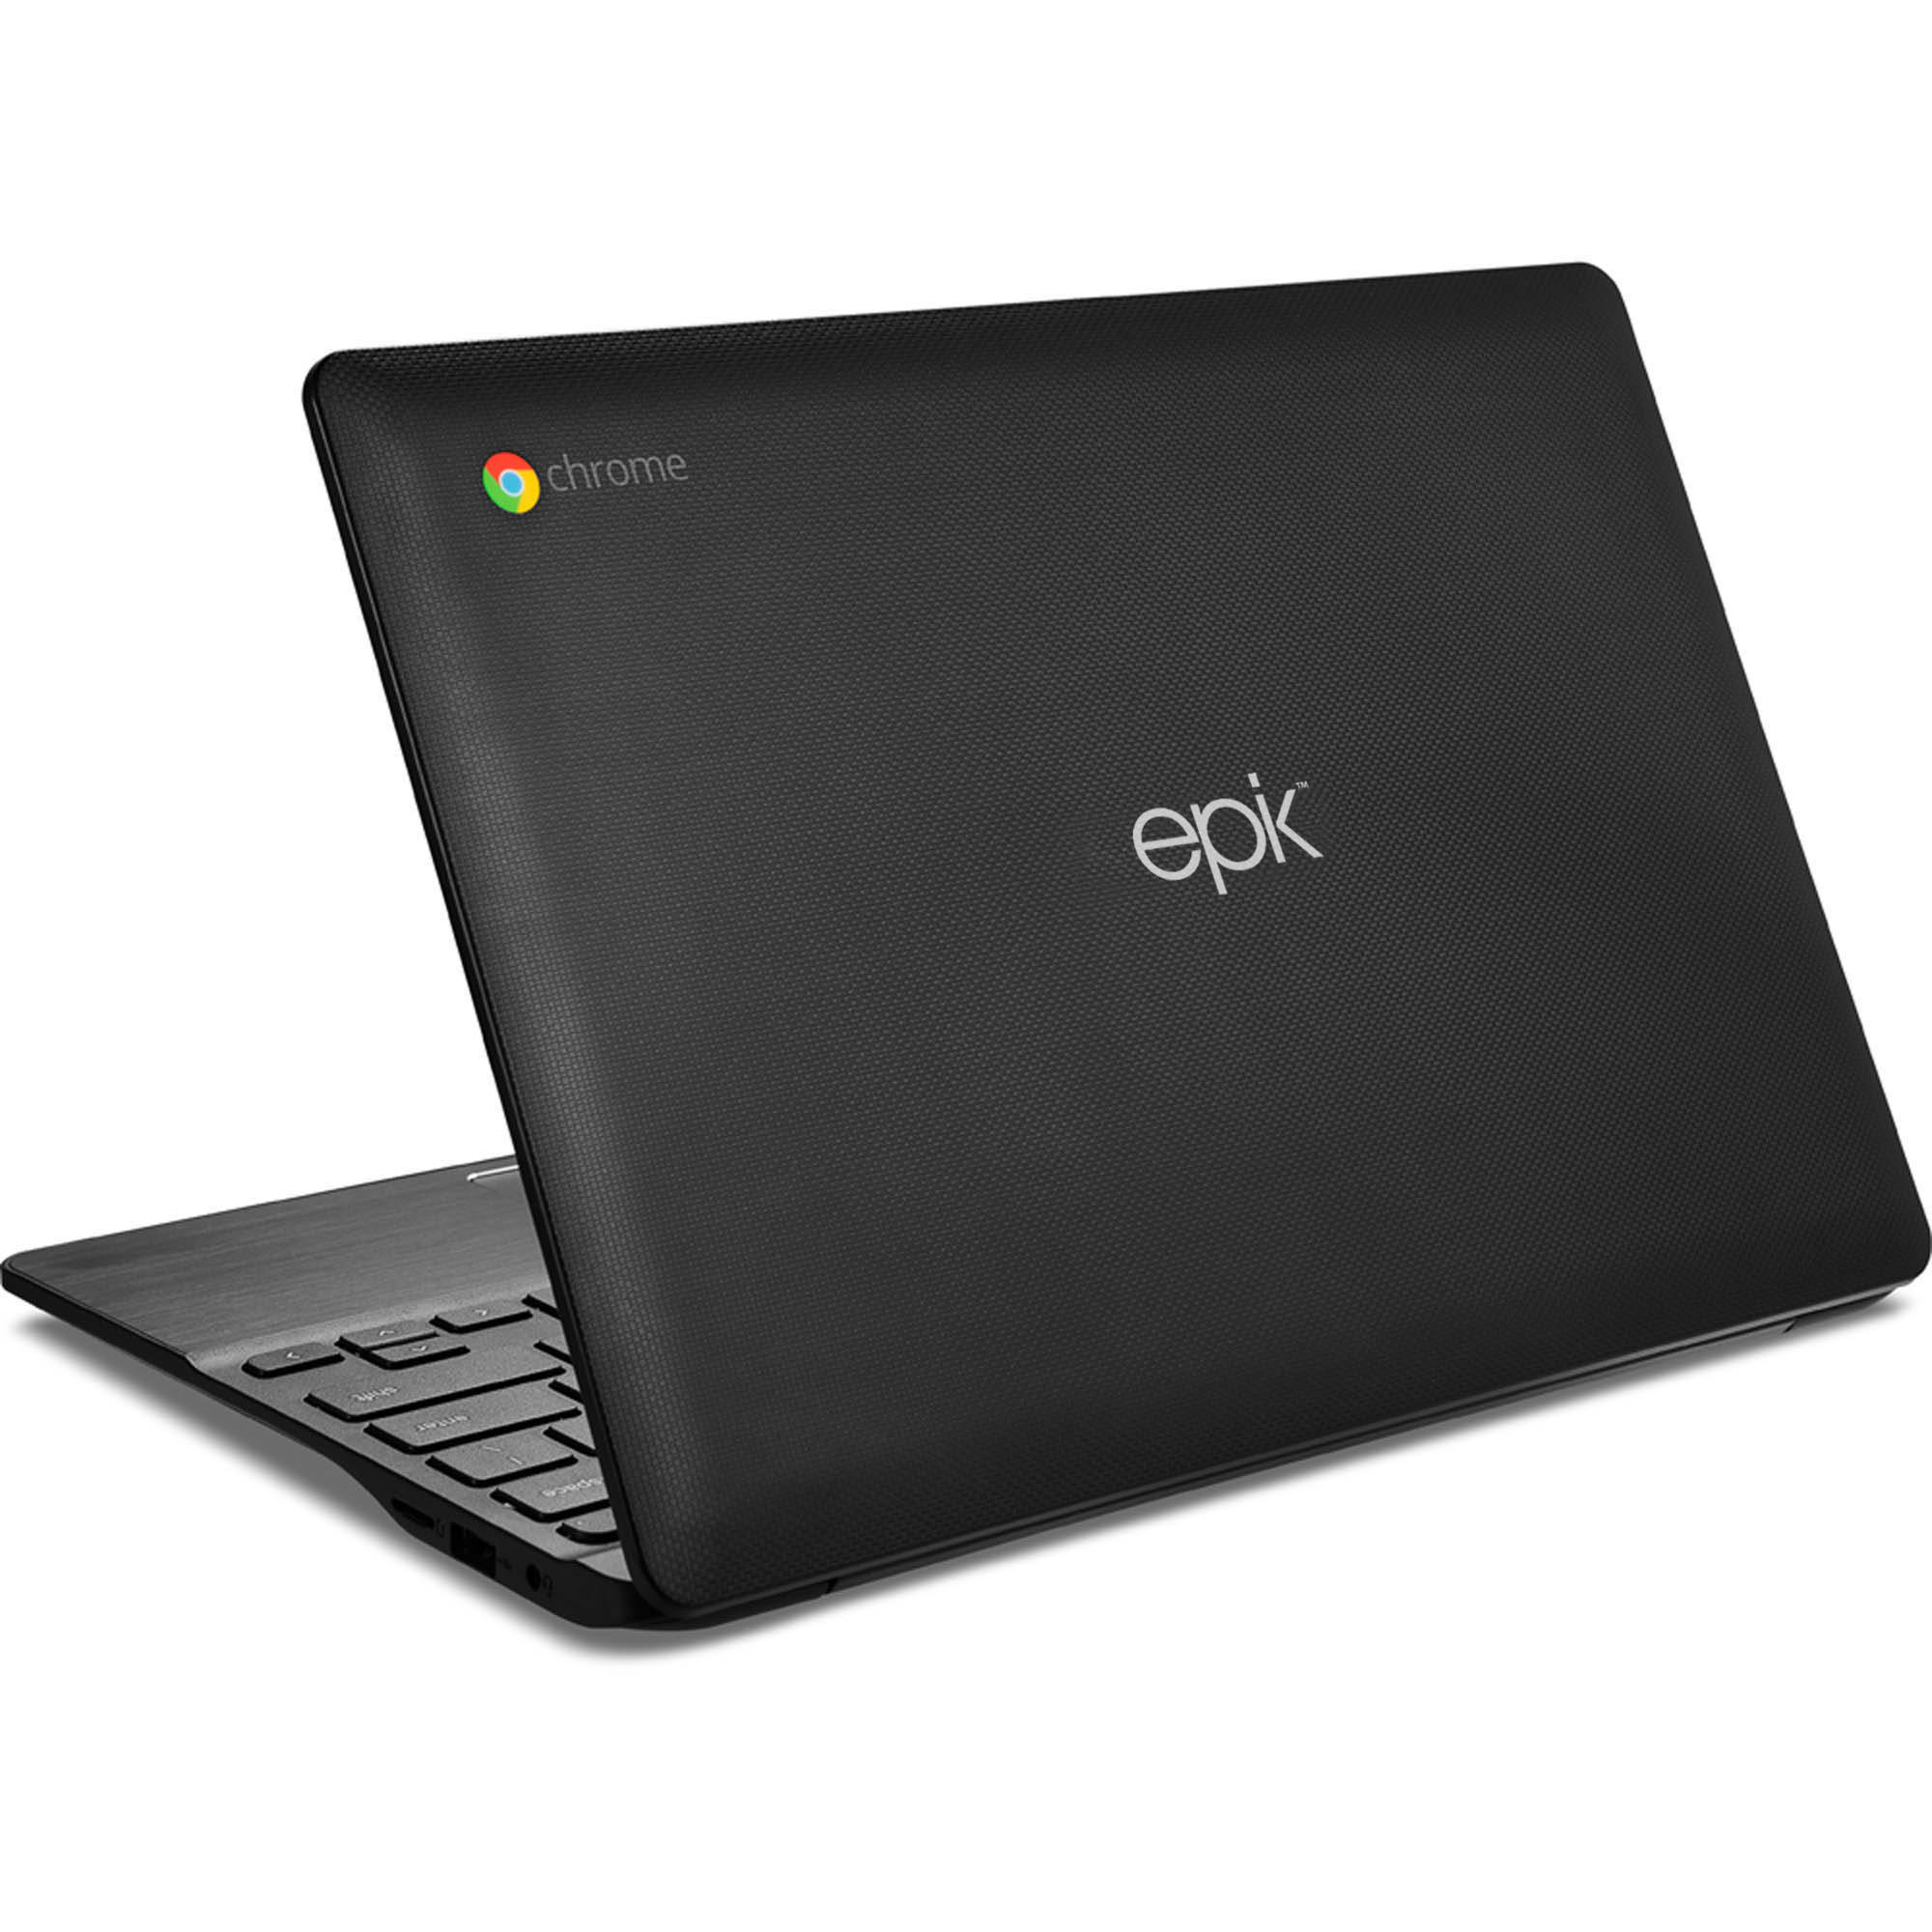 "Epik Learning Book 11.6"" Chromebook, Chrome, Rockchip RK3288 Cortex A17 Processor, 4GB RAM, 32GB Flash Storage"